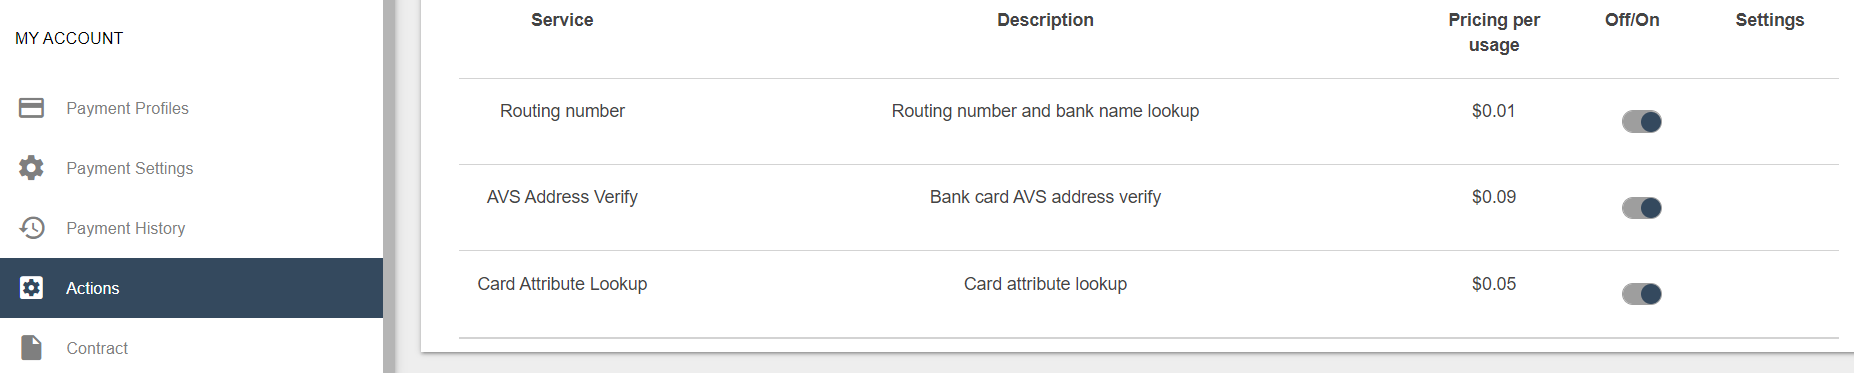 "Image shows the Actions section within My Account in the navigation pane at the left. One of the options is ""Card Attribute Lookup""."